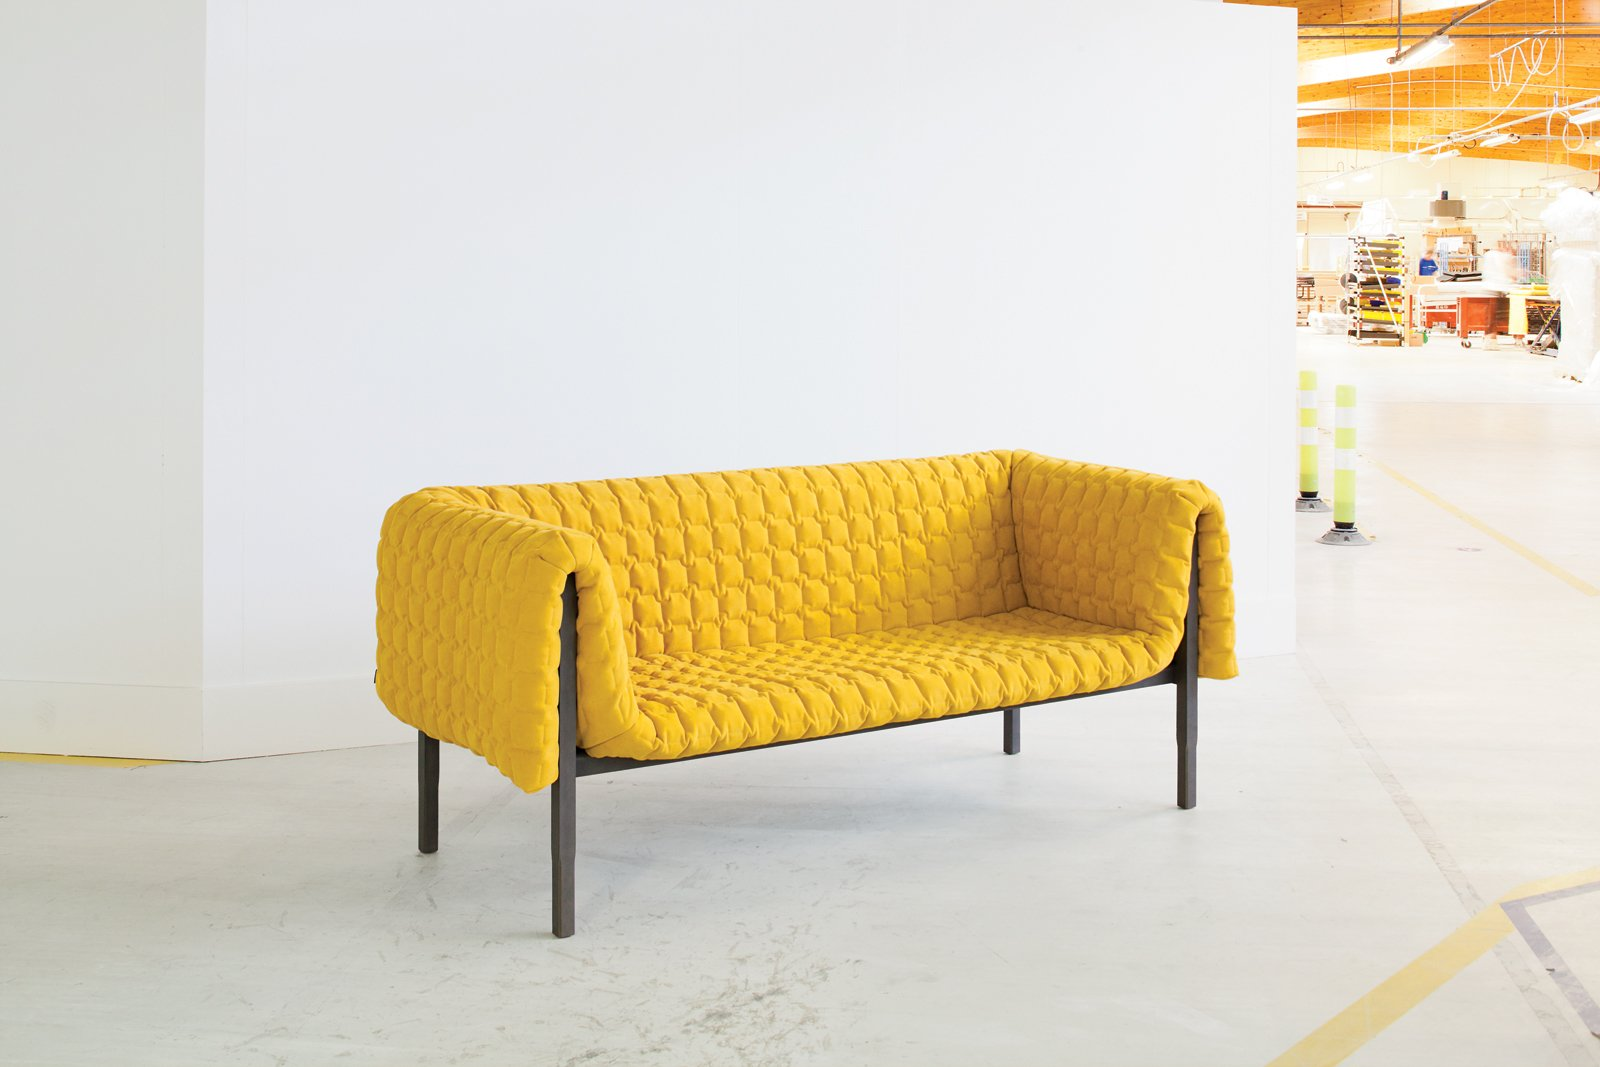 Despite its relatively simple-looking form, the Ruché is a highly labor-intensive piece of furniture, requiring a diverse range of craftspeople and talents.